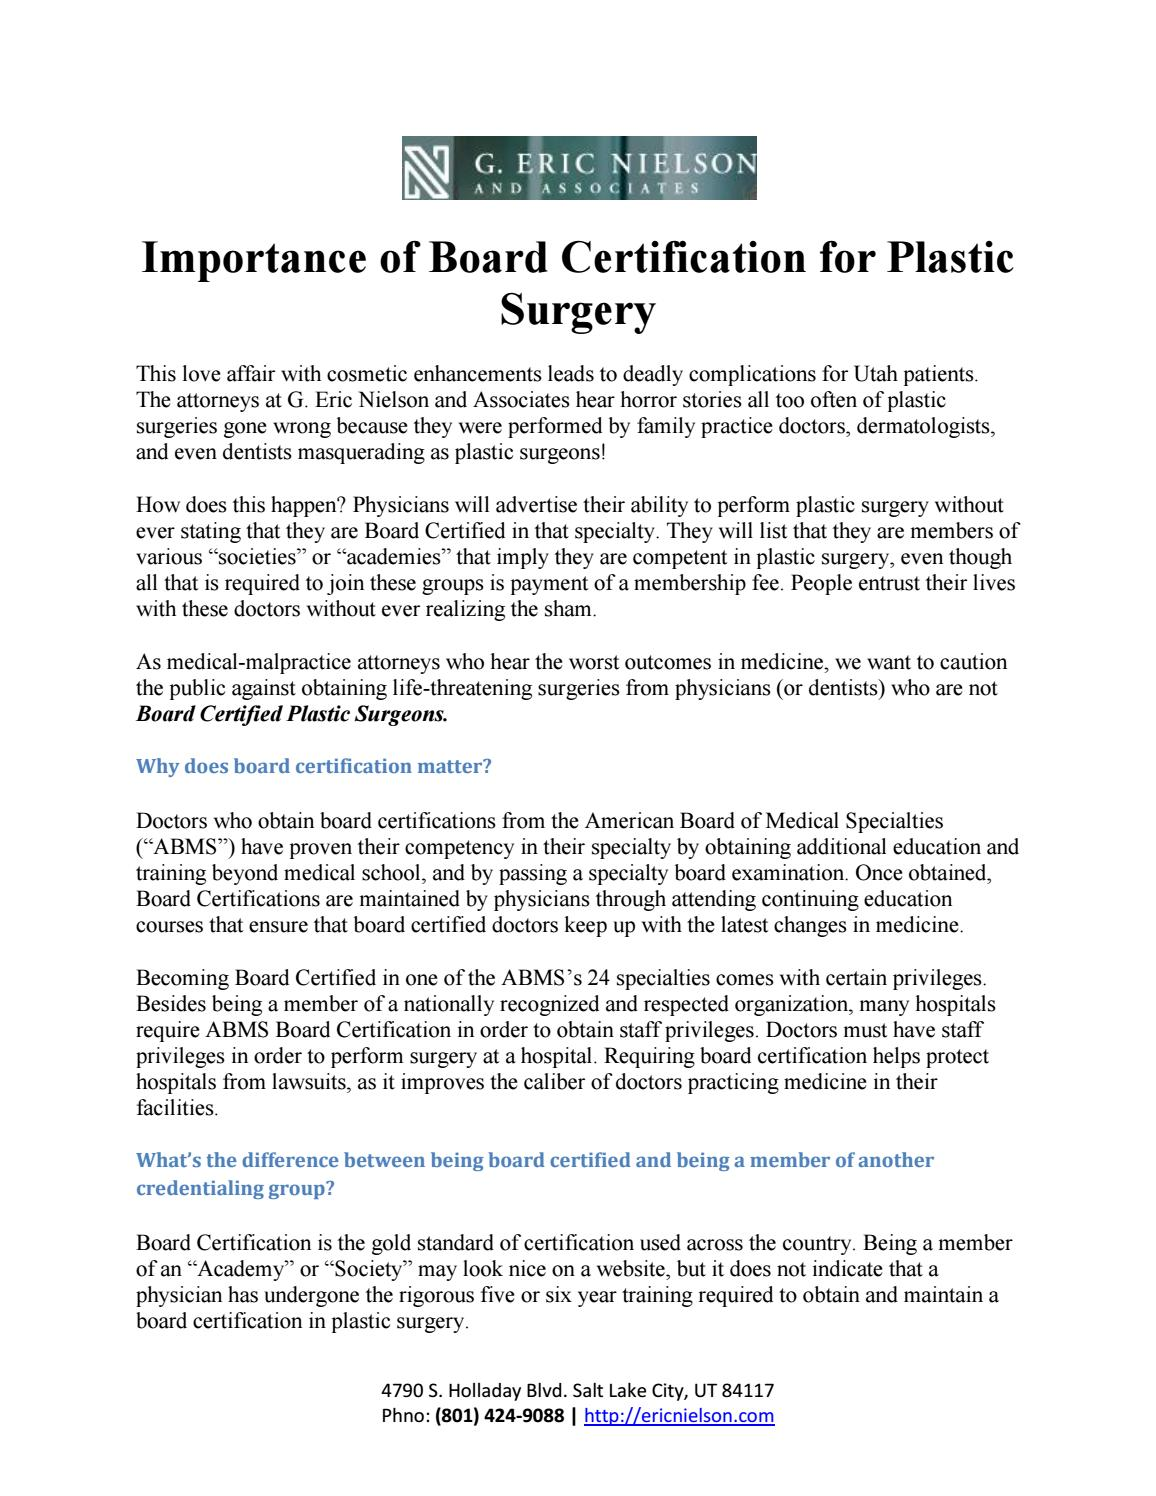 Importance of board certification for plastic surgery ericnielson importance of board certification for plastic surgery ericnielson by ericnielson issuu 1betcityfo Images